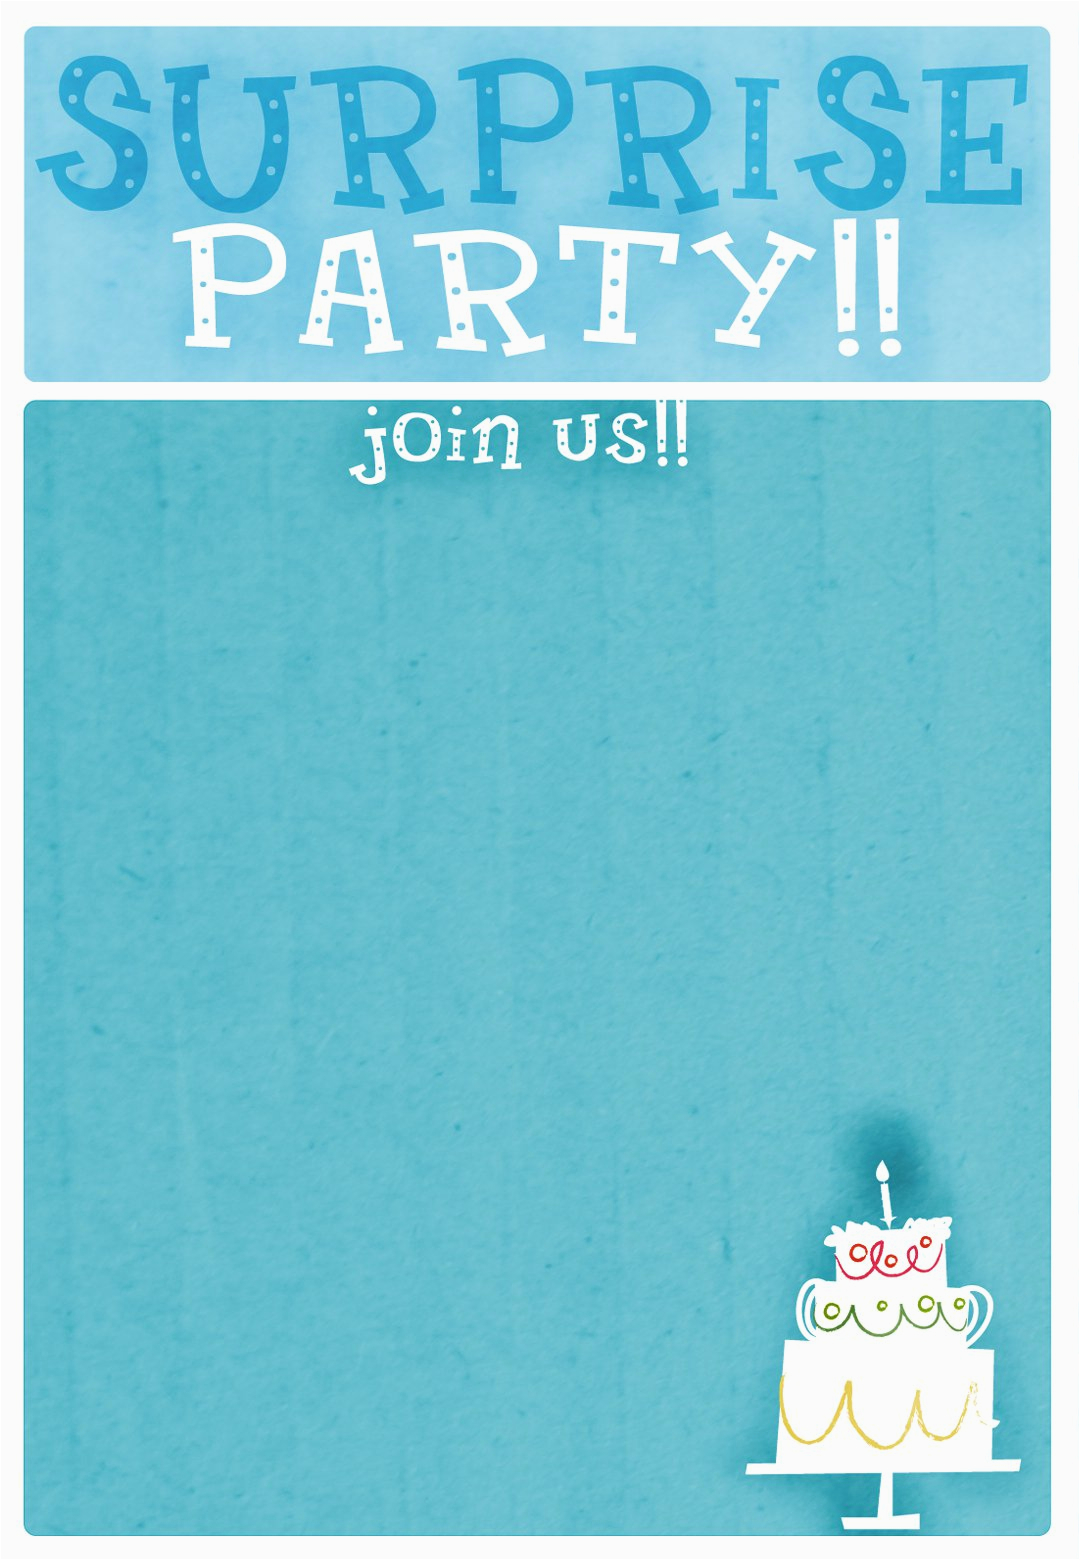 Free Surprise Birthday Party Invitations Free Printable Surprise 18th Birthday Invitations